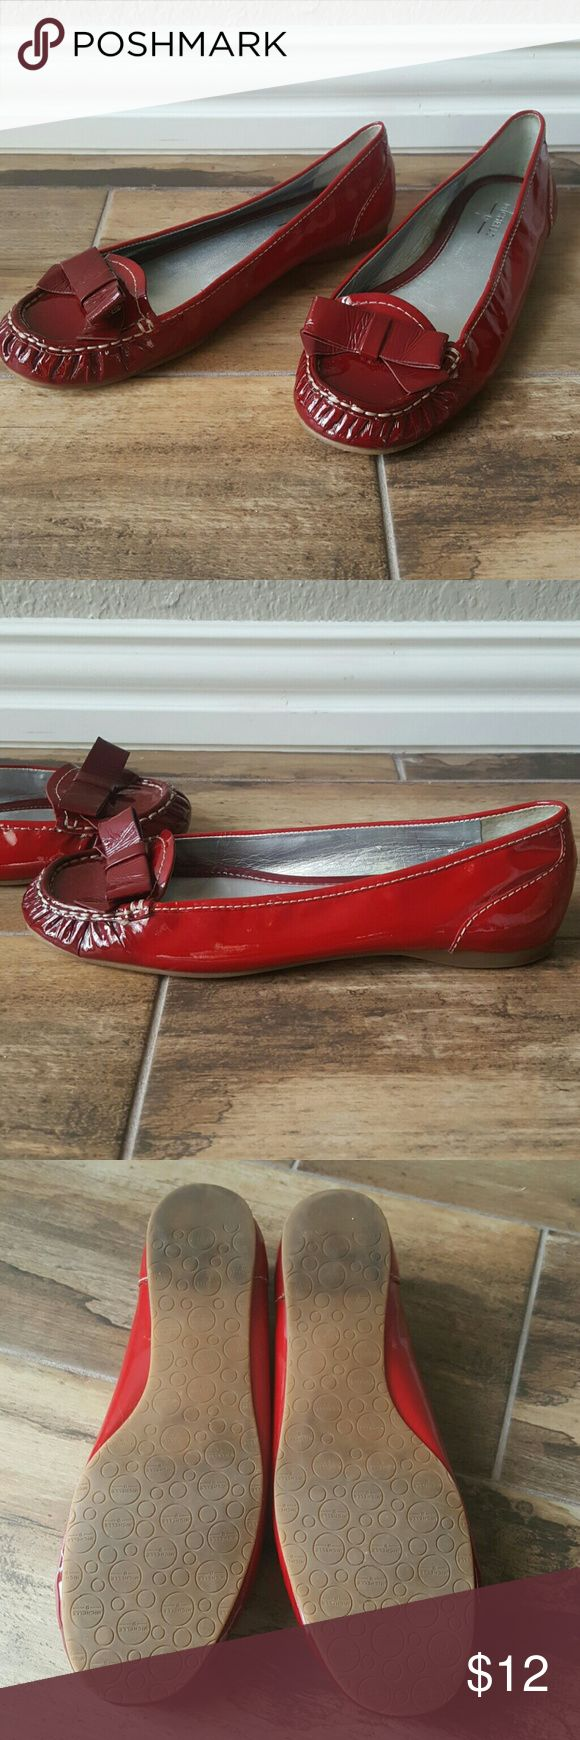 Red Loafer It is a two tone color shoe. The front of the shoe is darker red wine color and red the rest of the shoe. Shoes Flats & Loafers